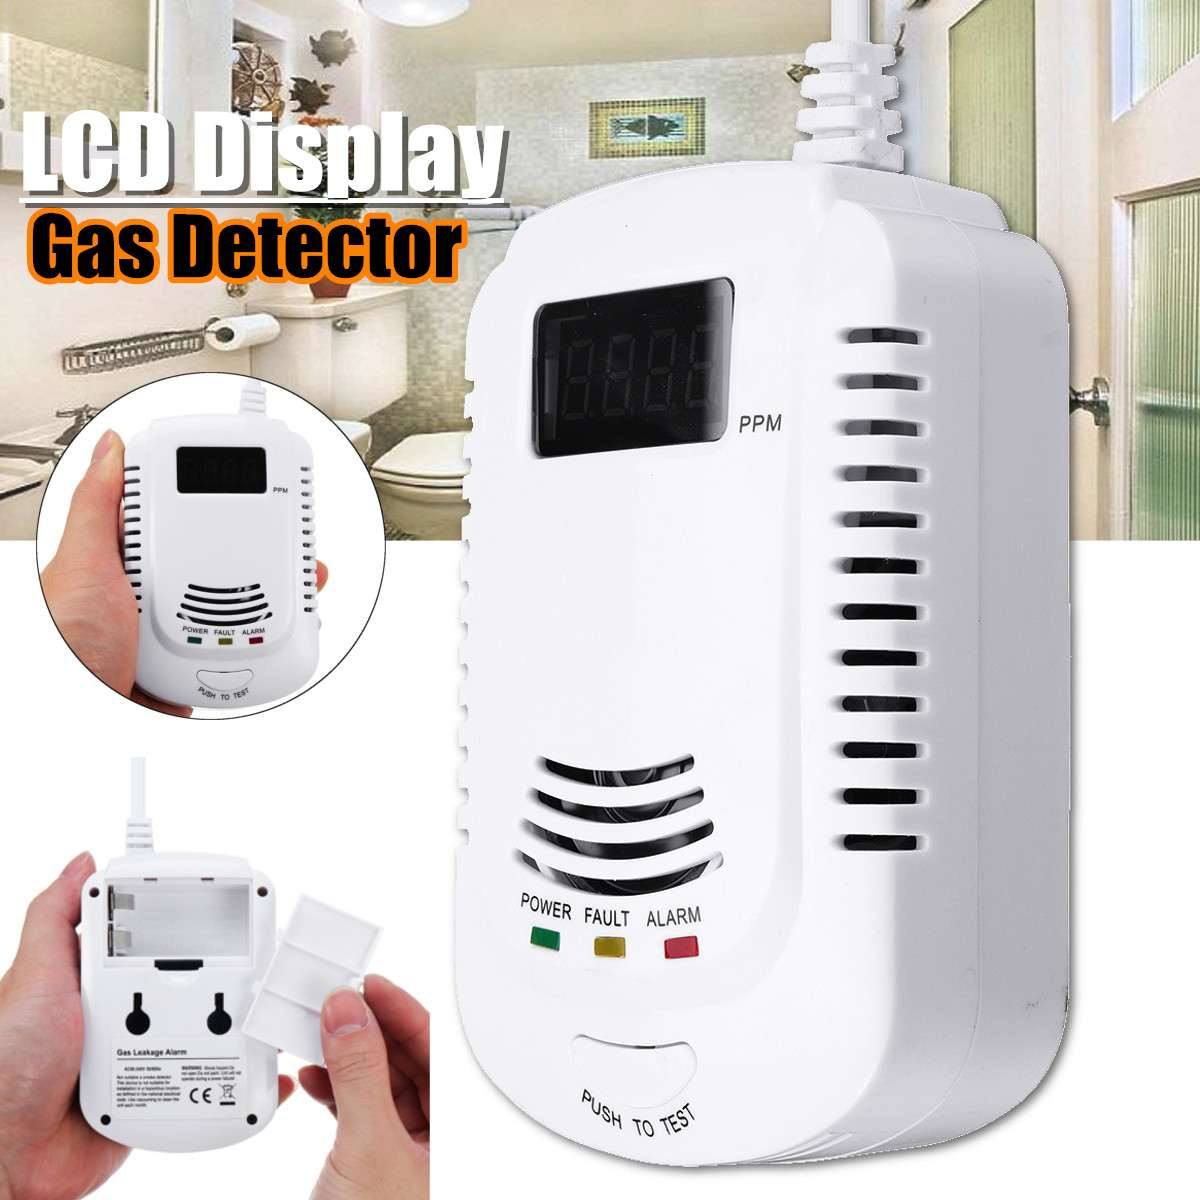 LCD Display Smart Voice Gas Detector Analyzer Carbon Detector Propane Butane Methane Safe Alarm Sensor Device White